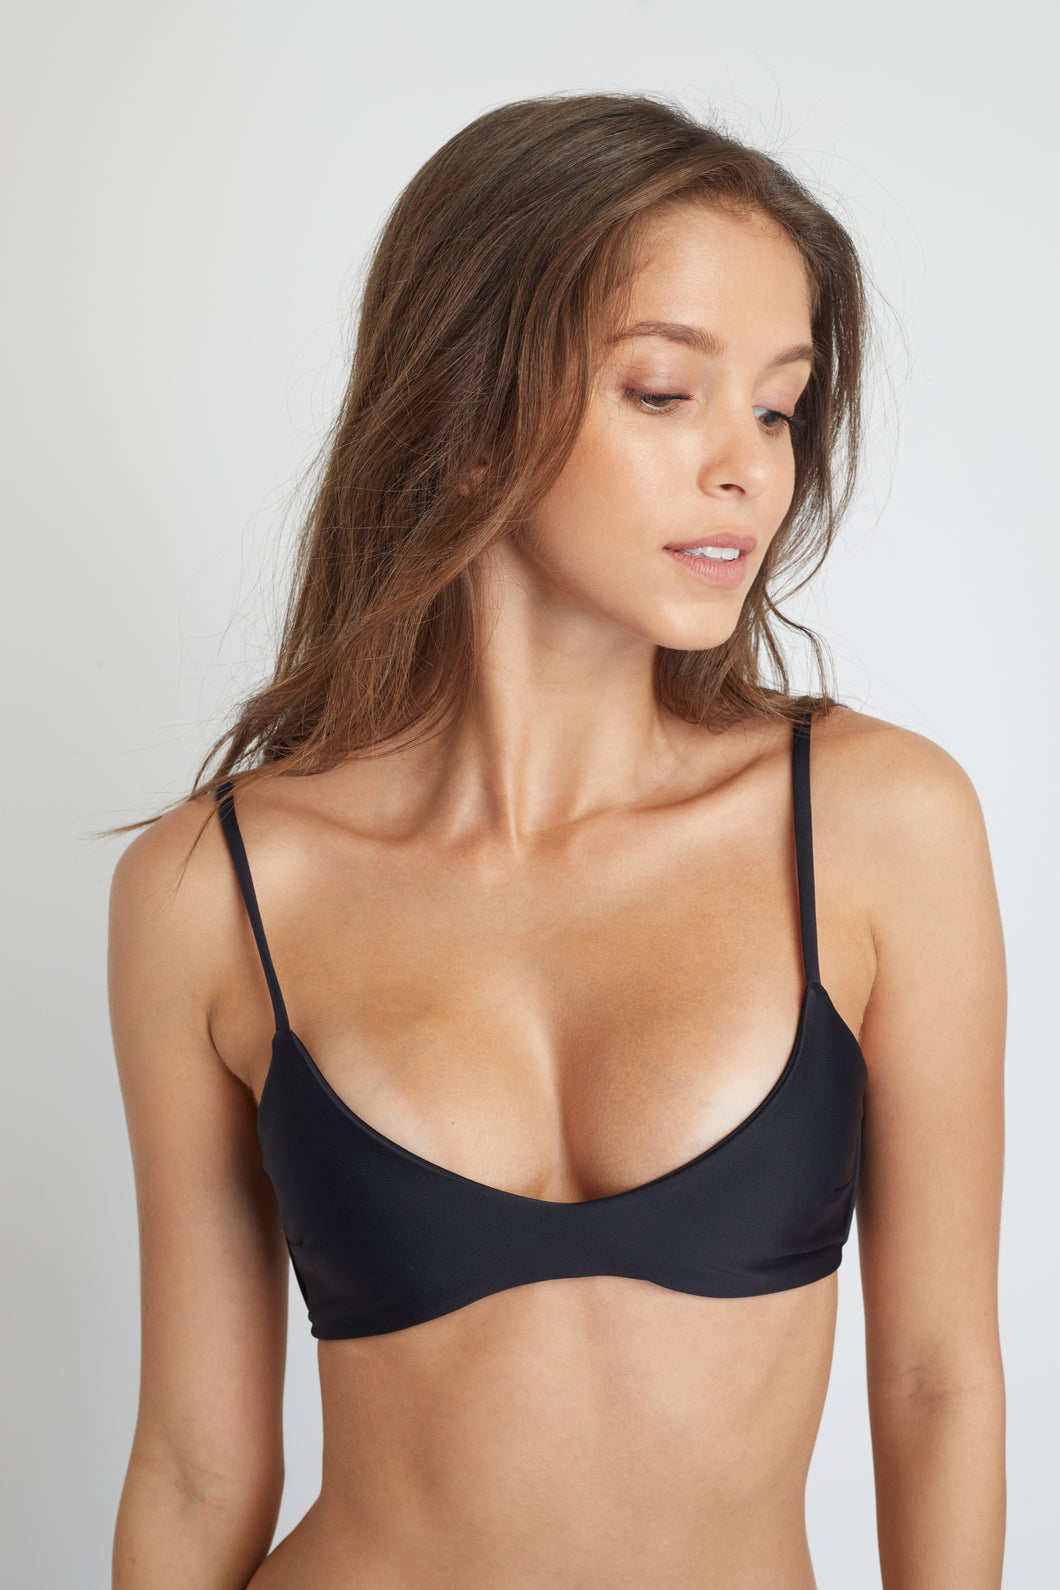 Ozero Swimwear Malawi Sustainable Bikini Top in Black, close-up view